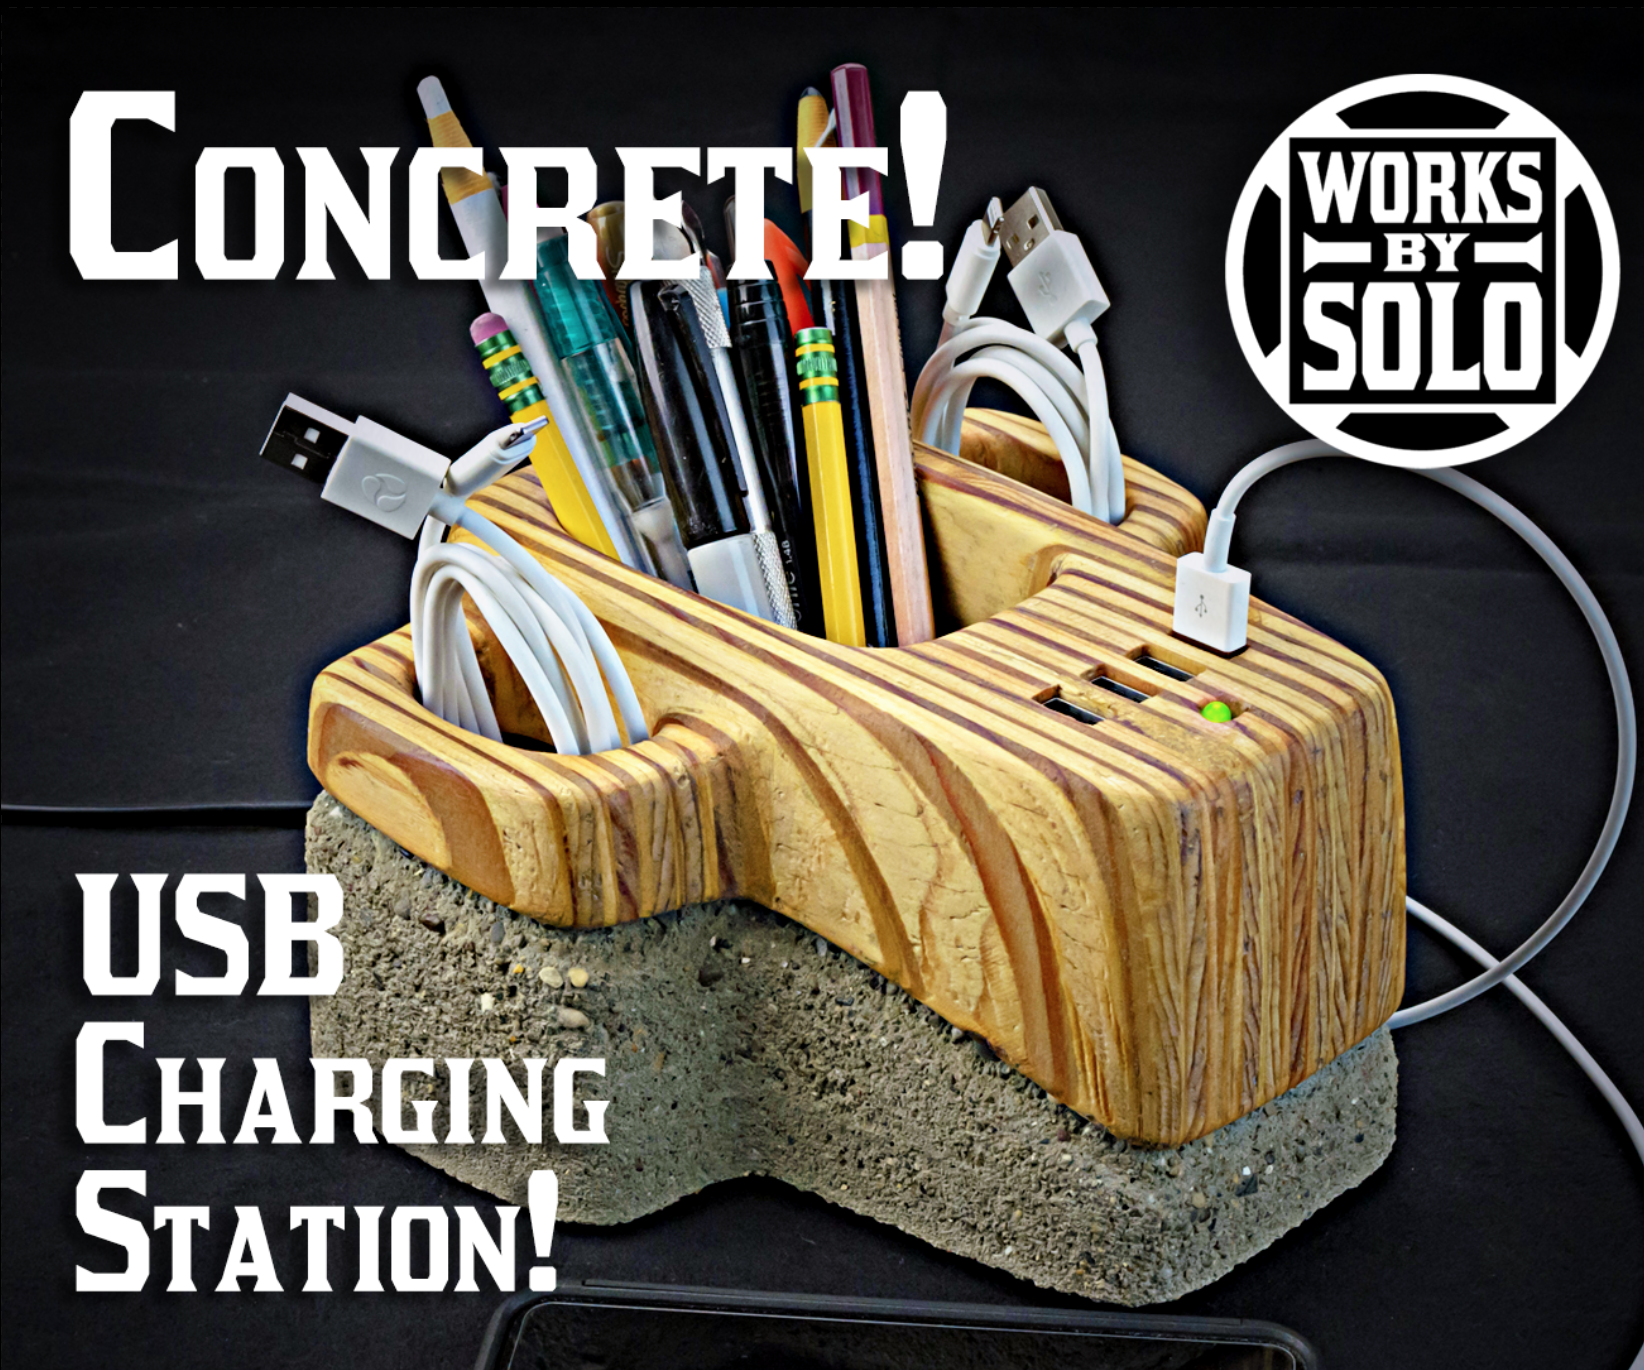 Concrete USB Charging Hub With Storage